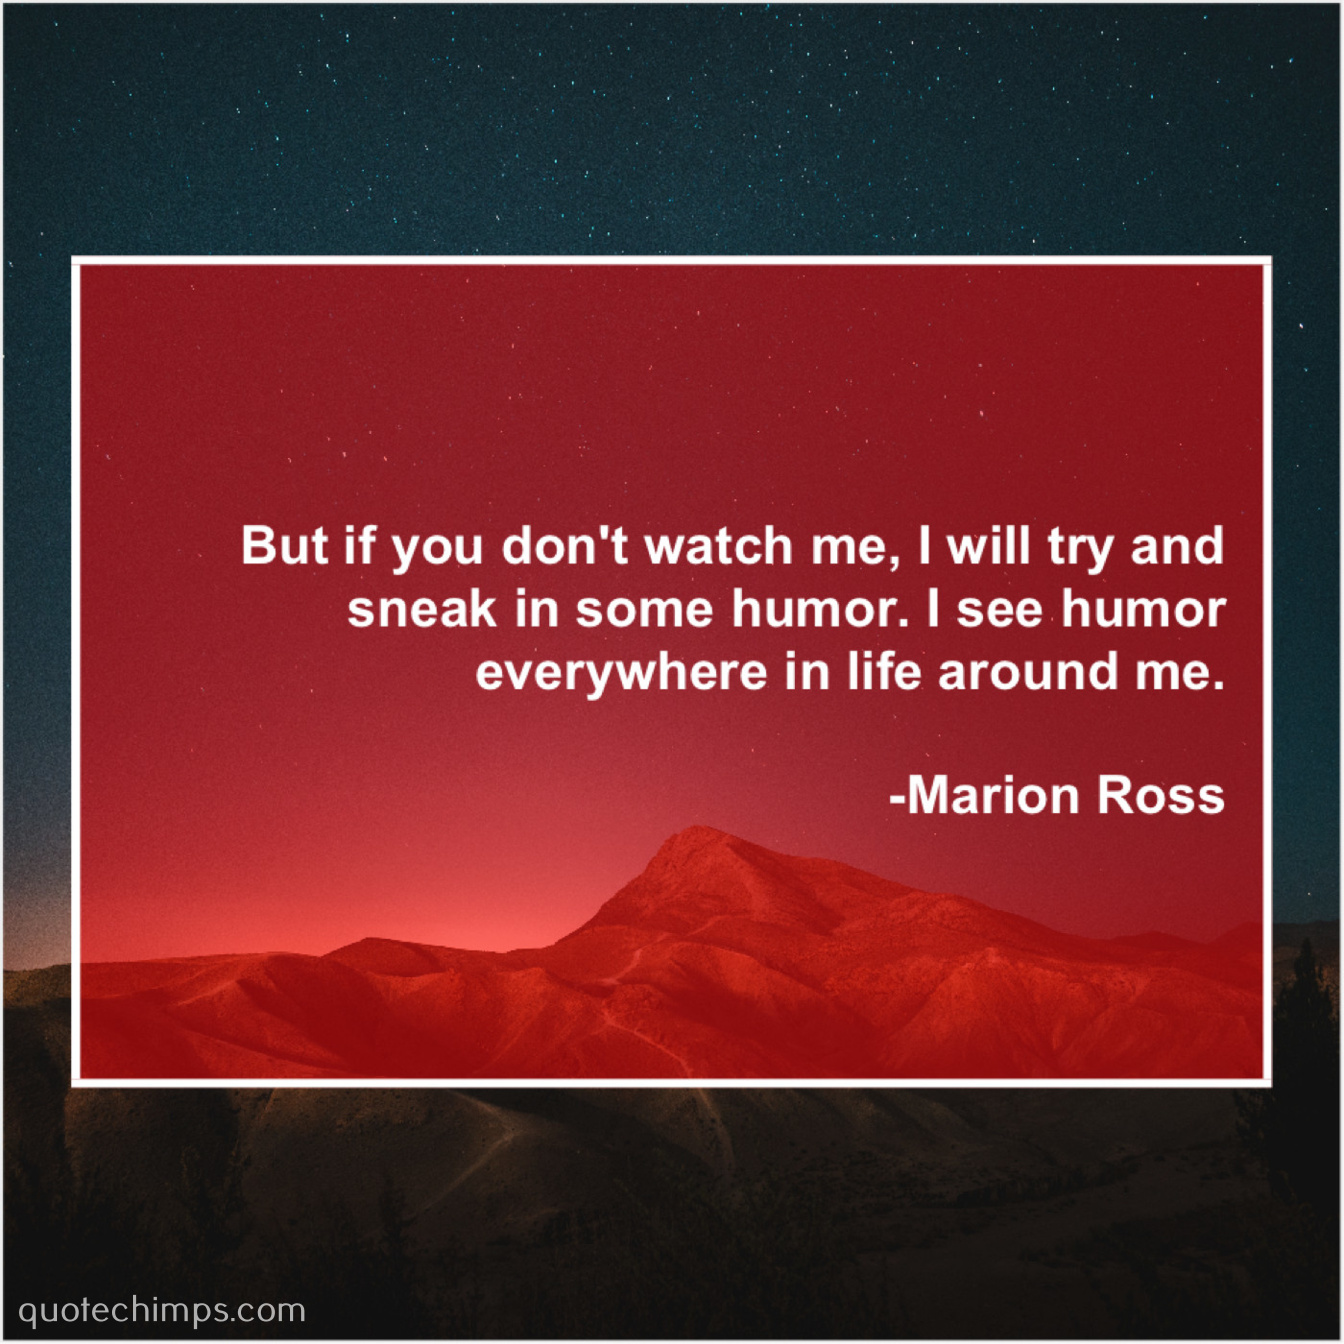 Ross Around Me >> Marion Ross But If You Don T Watch